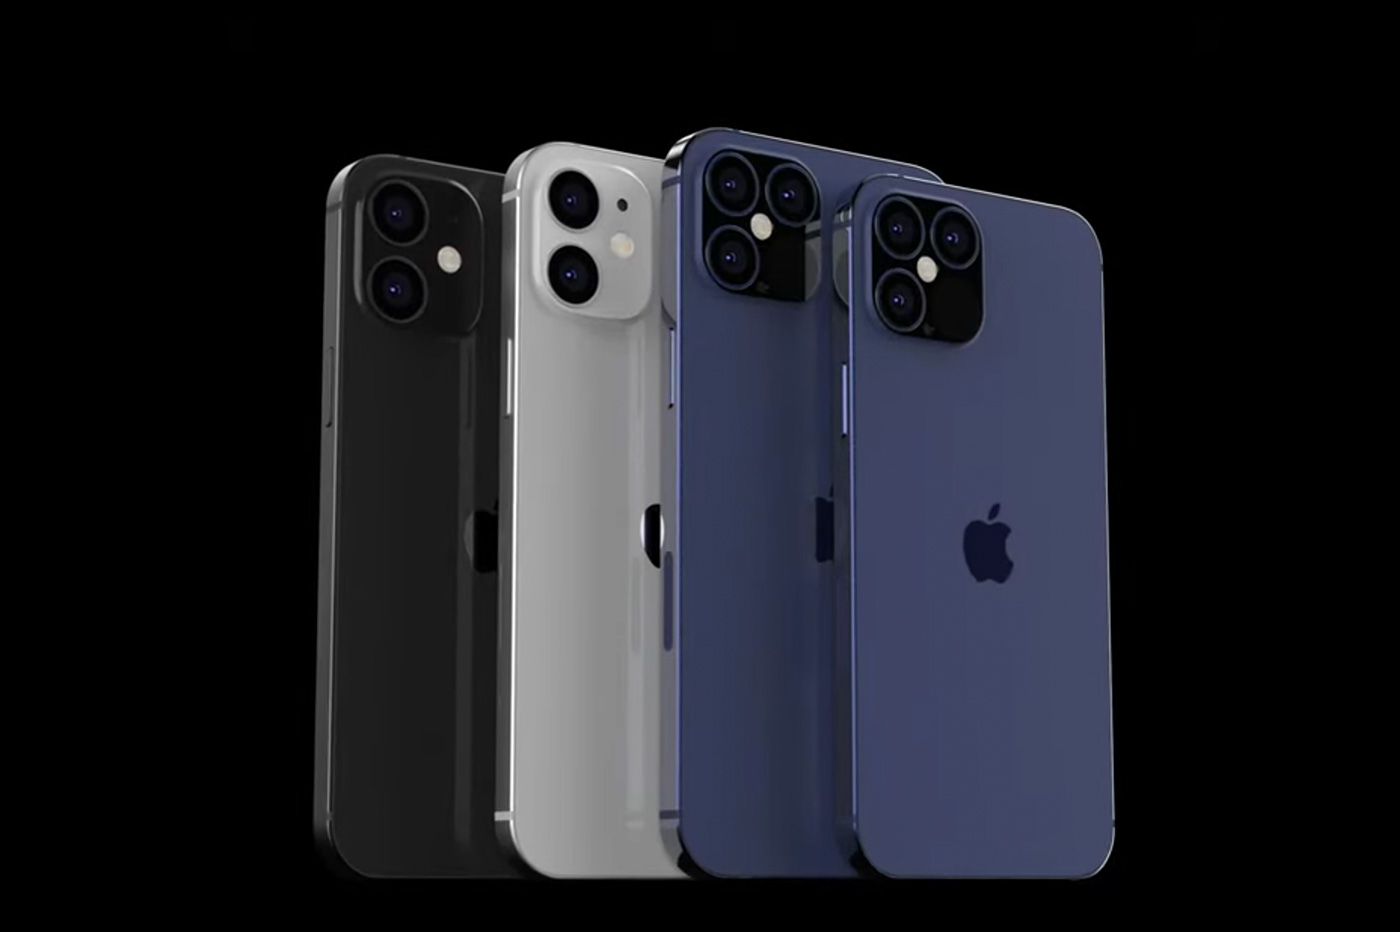 Iphone Maße Apple Iphone 12 : Production De Masse Le Mois Prochain - Sgl